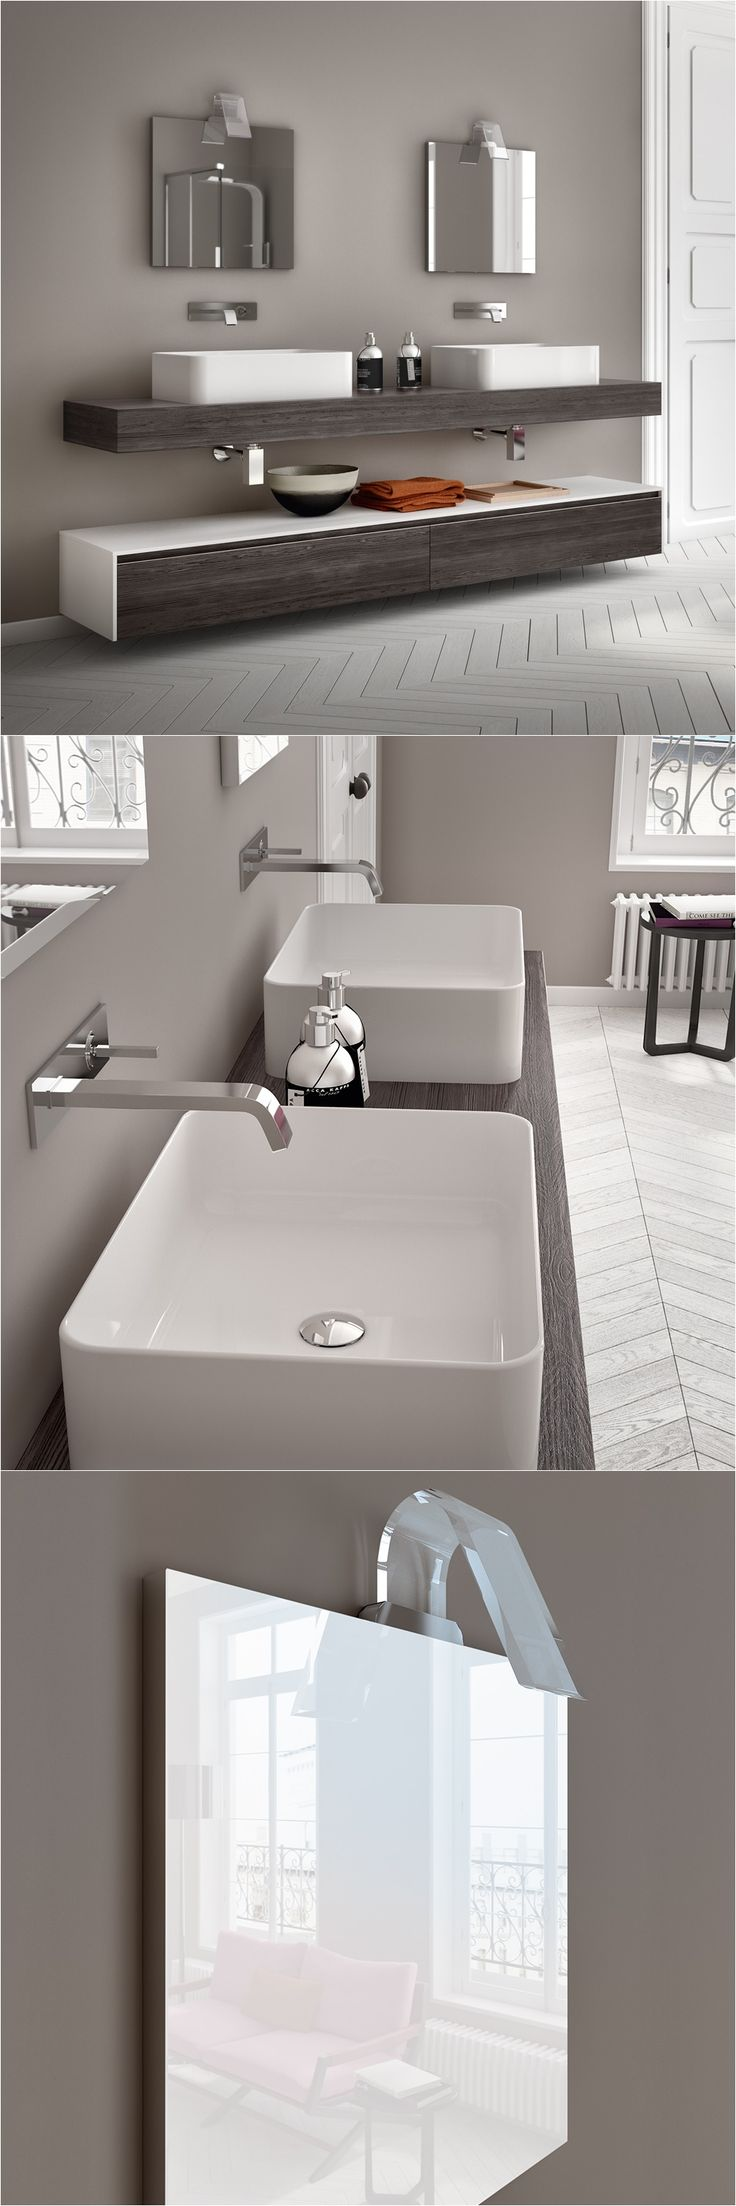 CHANGE Collection • COMPOSITION 02 - Bathroom furniture. HAFRO GEROMIN » Gruppo Geromin